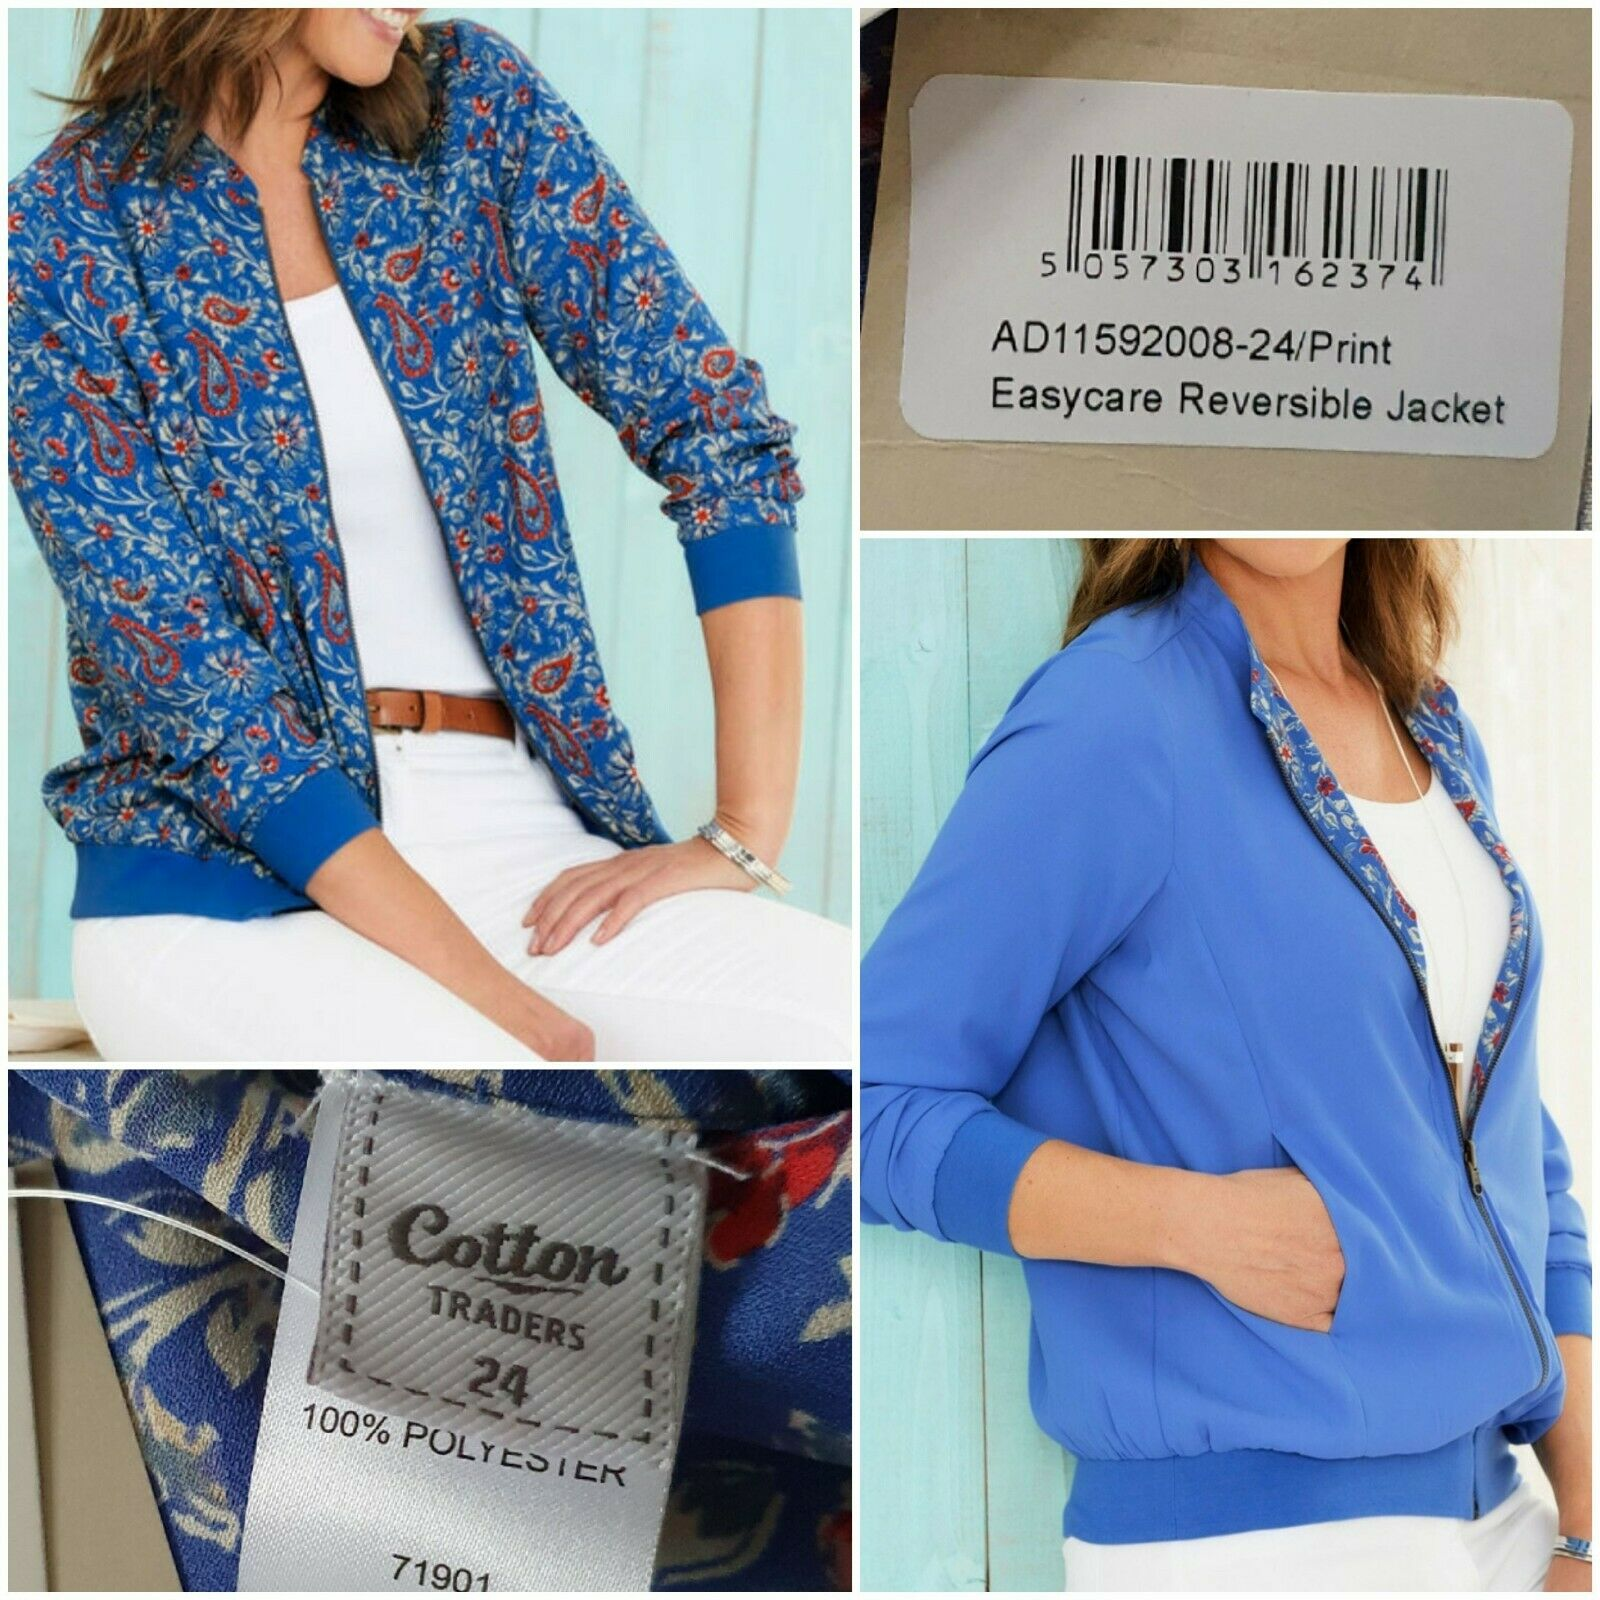 Easy Care Reversible Jacket Size 24 Blue & Floral With Pockets